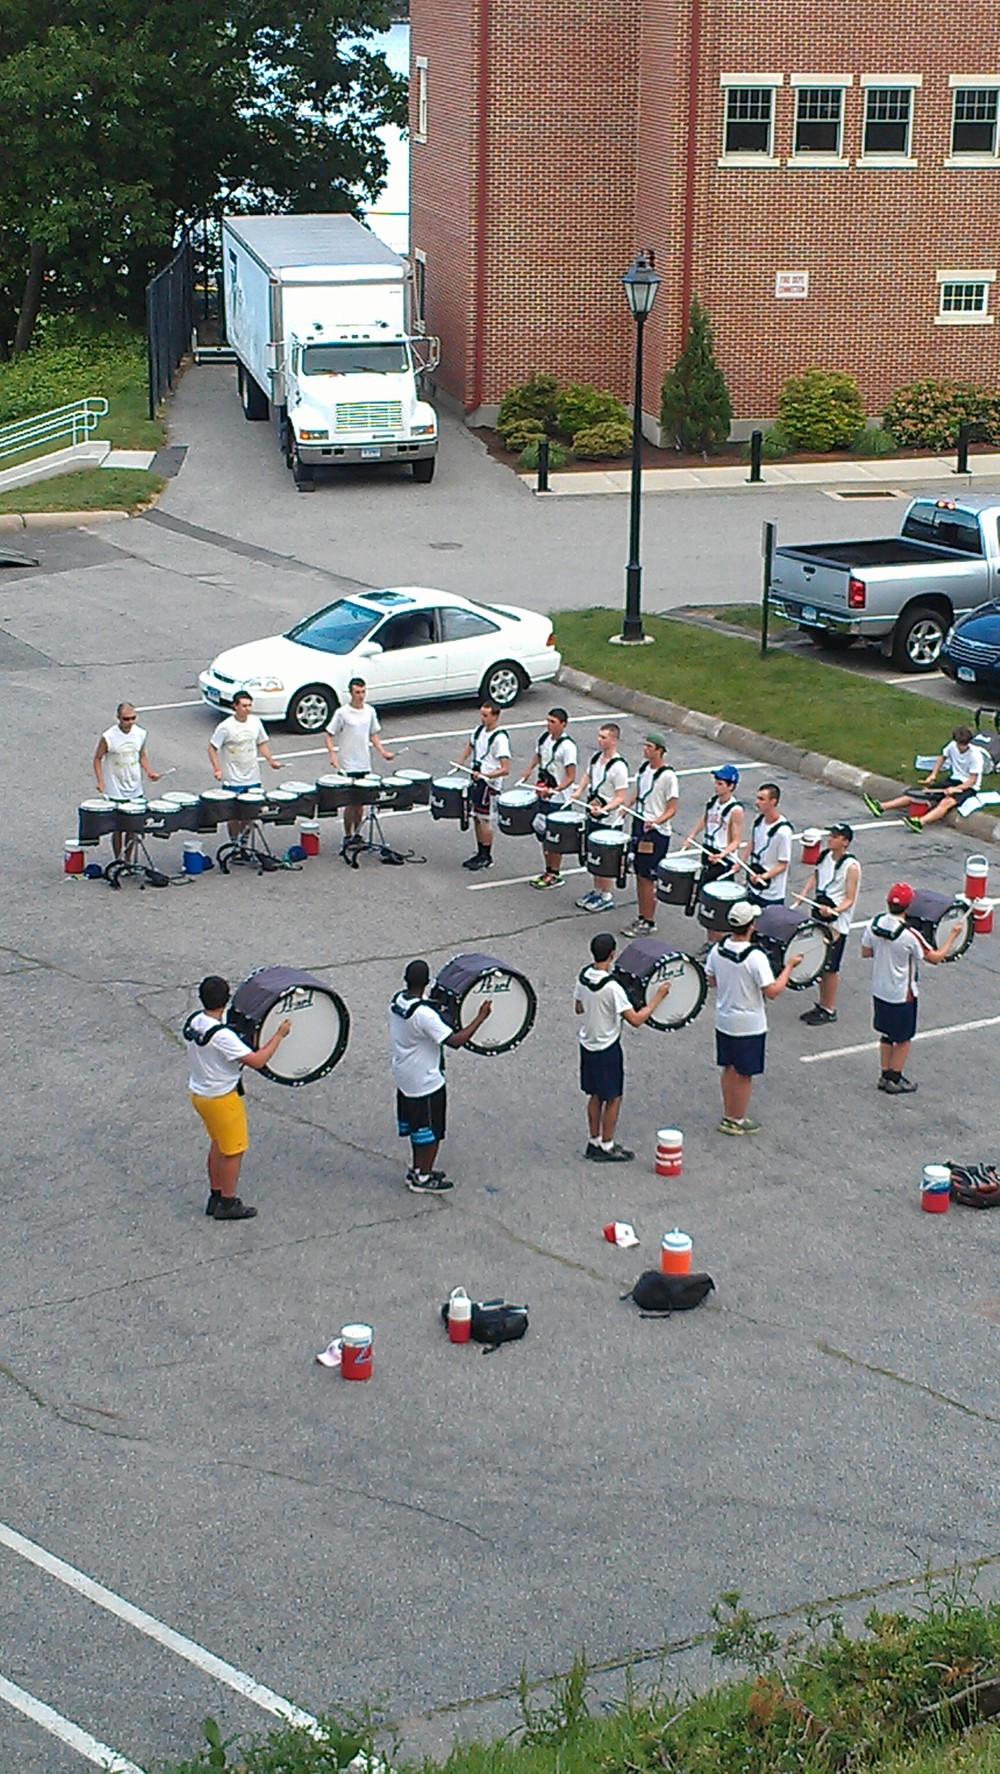 We also got to see the USCGA drumline at practice....and they were good!